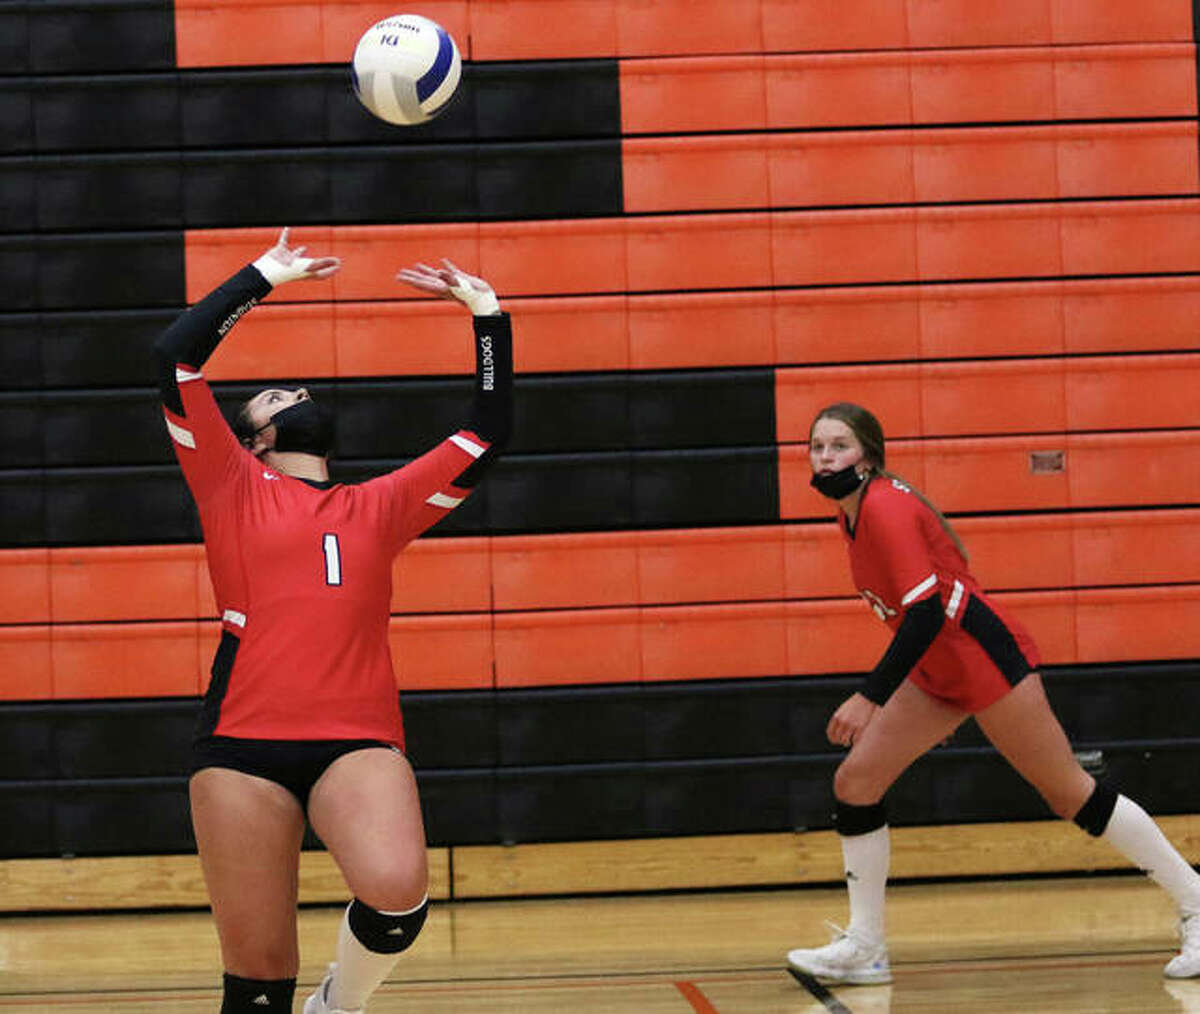 Staunton's Kennedy Legendre (right) heads to the net while teammate Savannah Billings sets during a match at the Edwardsville Tournament on Sept. 3. Legendre earned all-tourney honors Saturday while the Bulldogs won the Macoupin County Tourney for a fourth successive season.